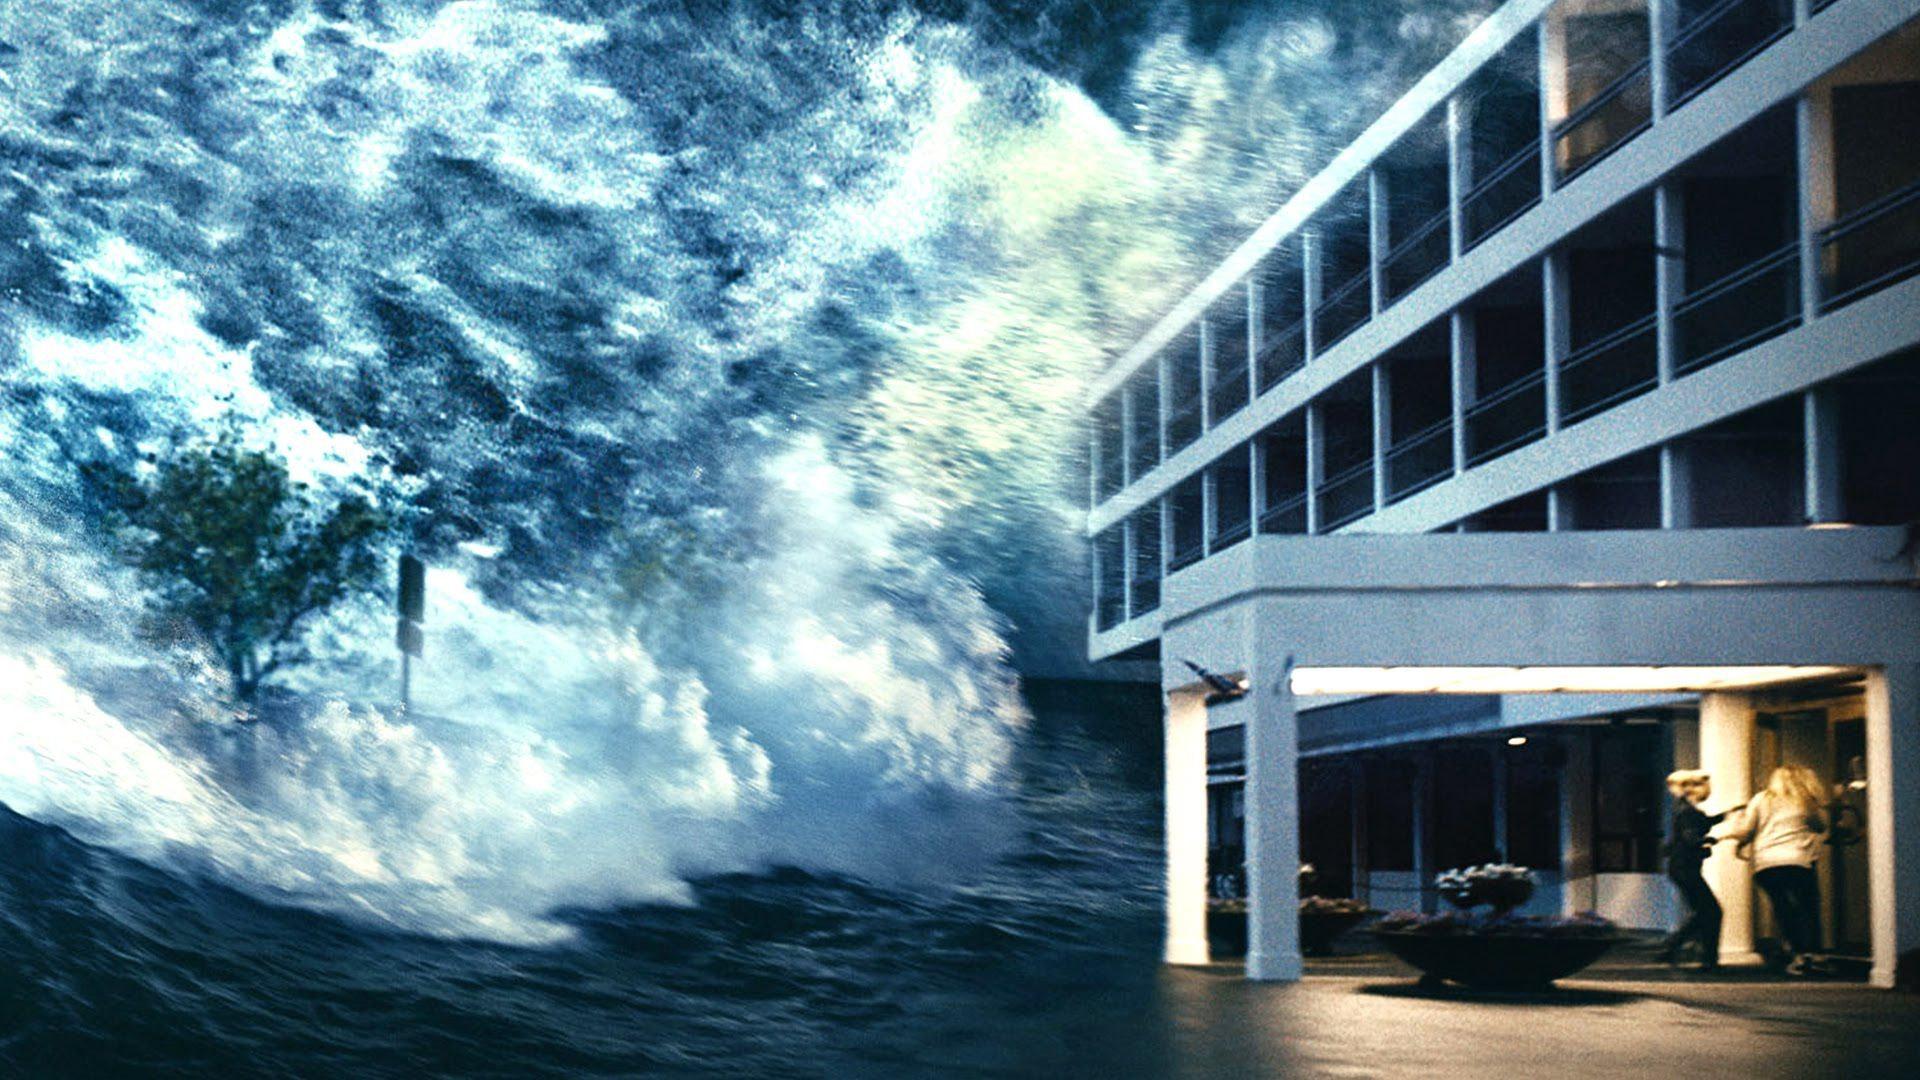 THE WAVE Trailer (Disaster Movie 2016) YouTube